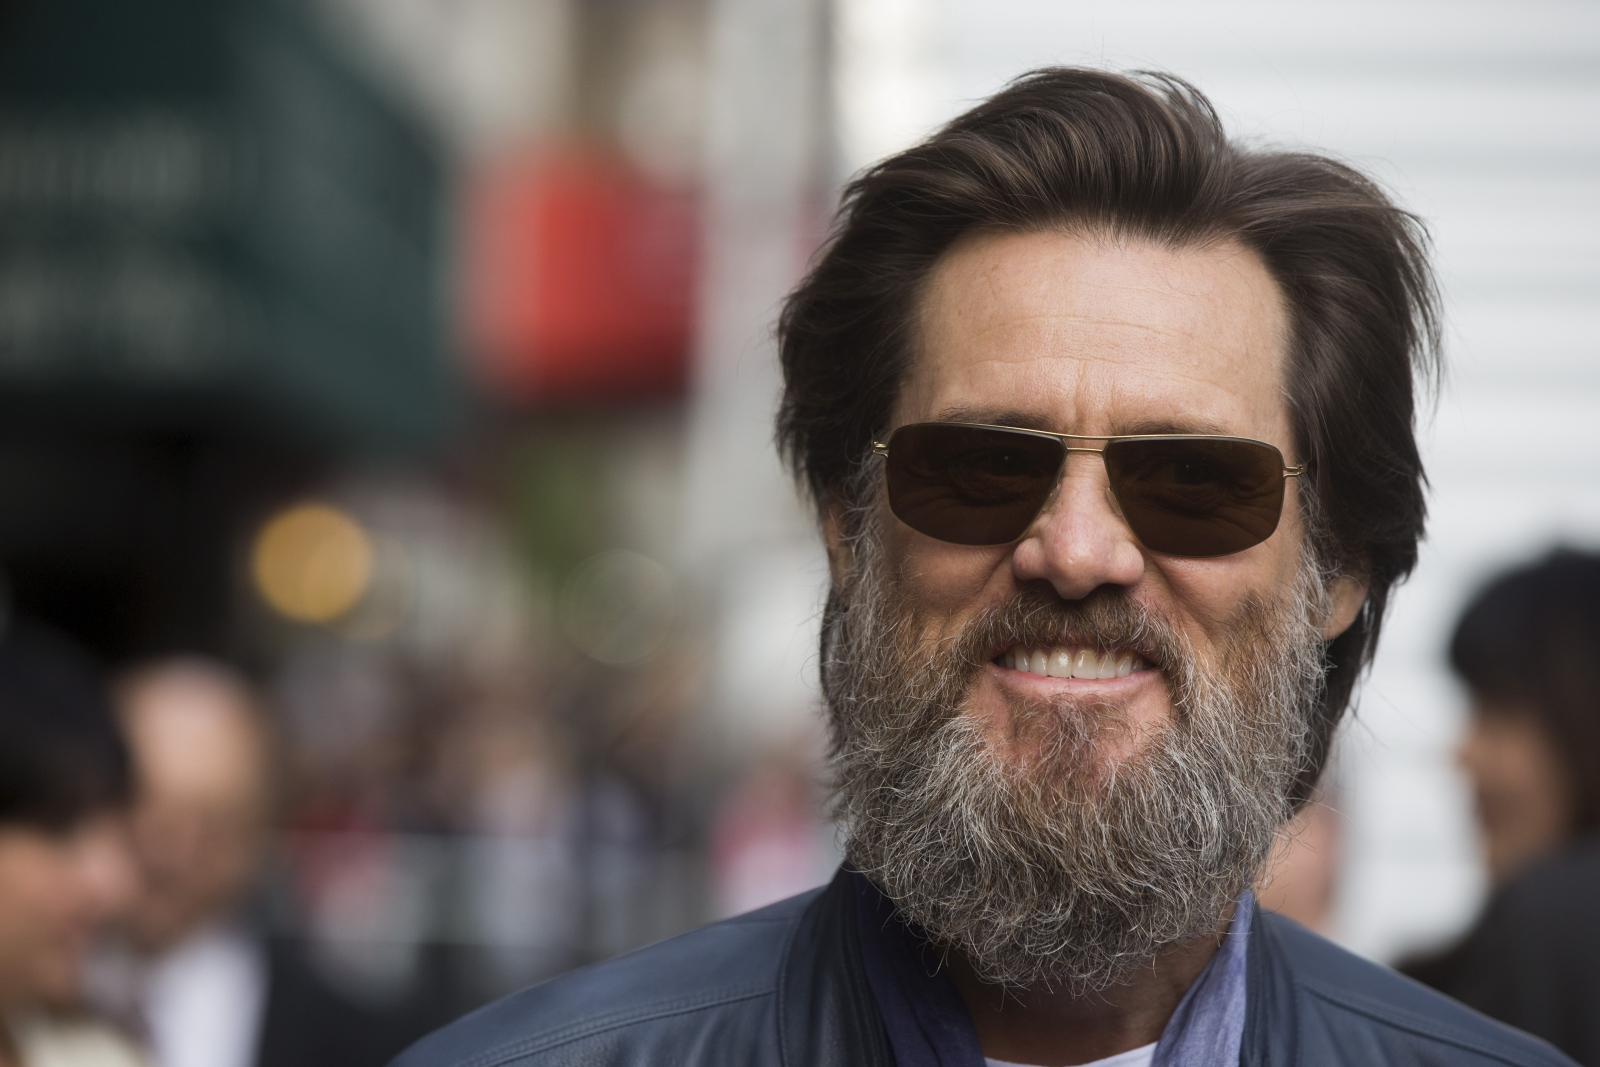 Jim Carrey fans are worried after actor shares ... Jim Carrey